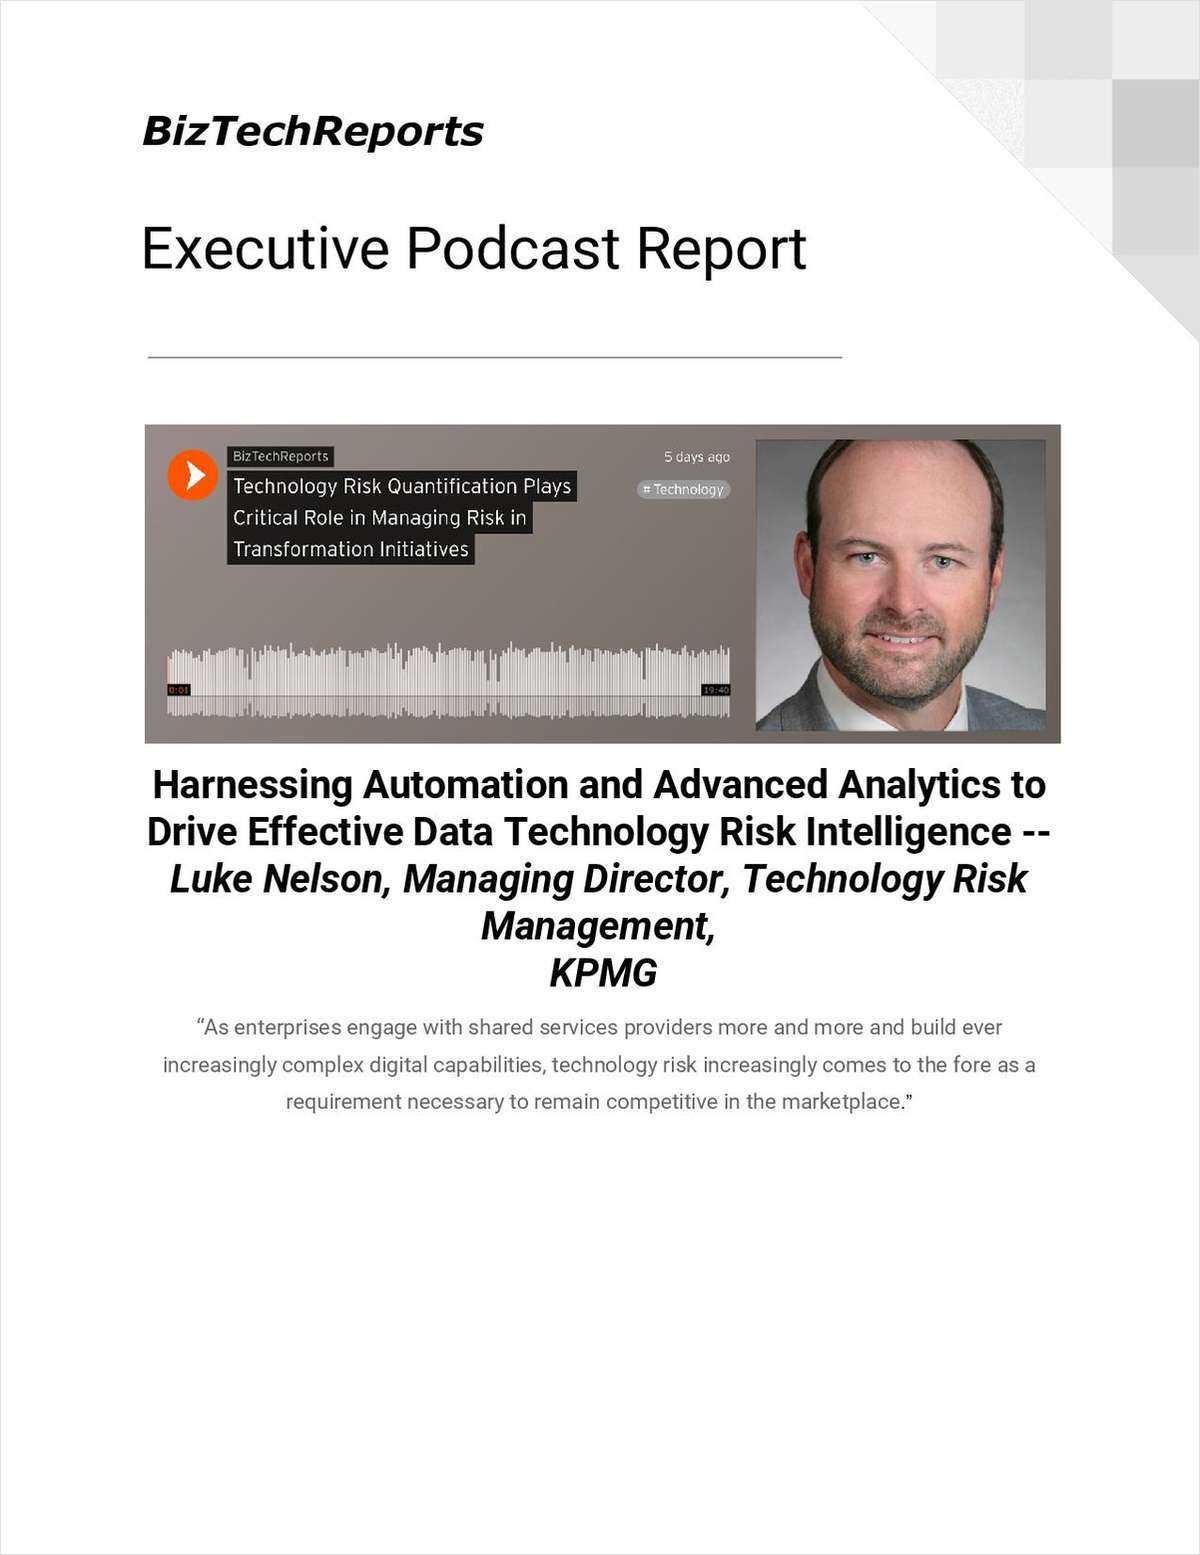 Harnessing Automation and Advanced Analytics to Drive Effective Data Technology Risk Intelligence -- Luke Nelson, Managing Director, Technology Risk Management, KPMG